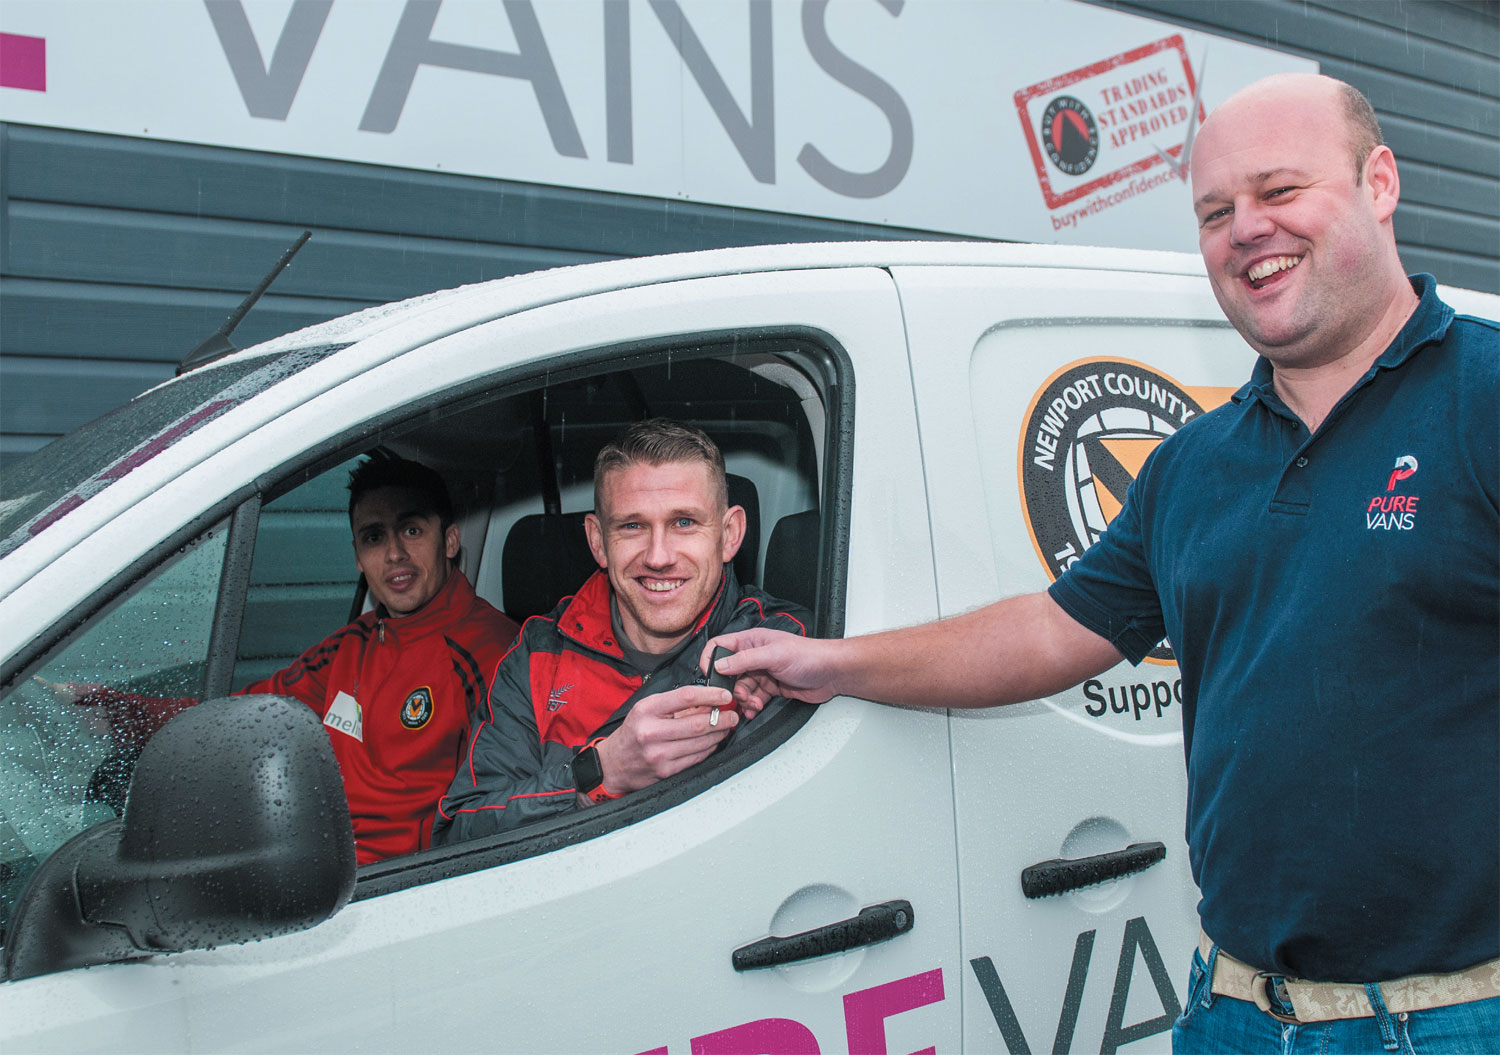 Pure Vans are committed to providing a service for the local community